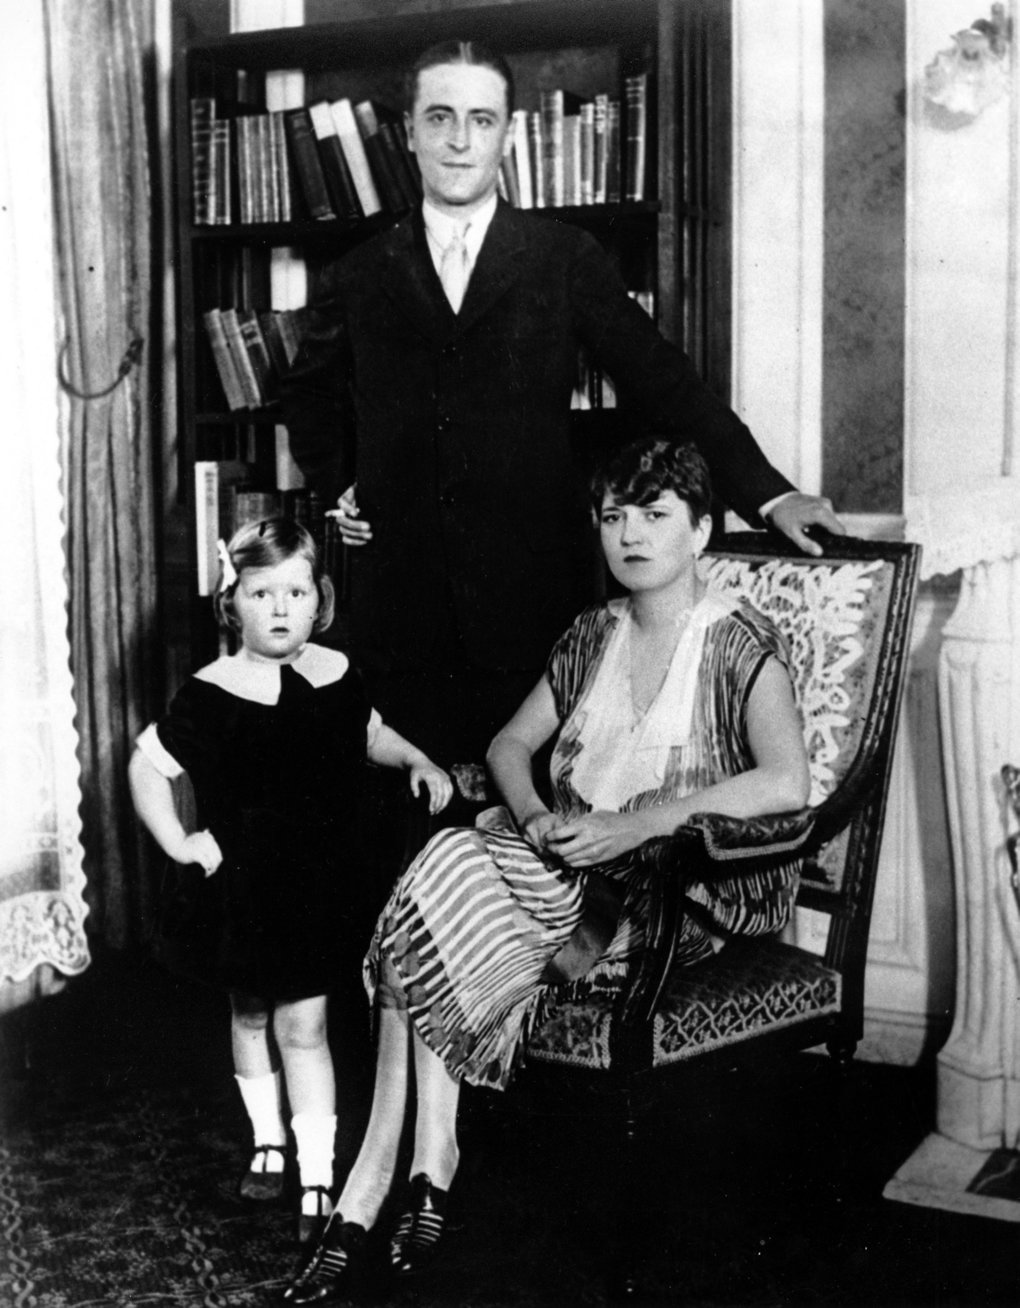 Author F. Scott Fitzgerald poses with his wife, Zelda, and his daughter Scottie in their apartment in Paris on July 16, 1925. (The Associated Press)